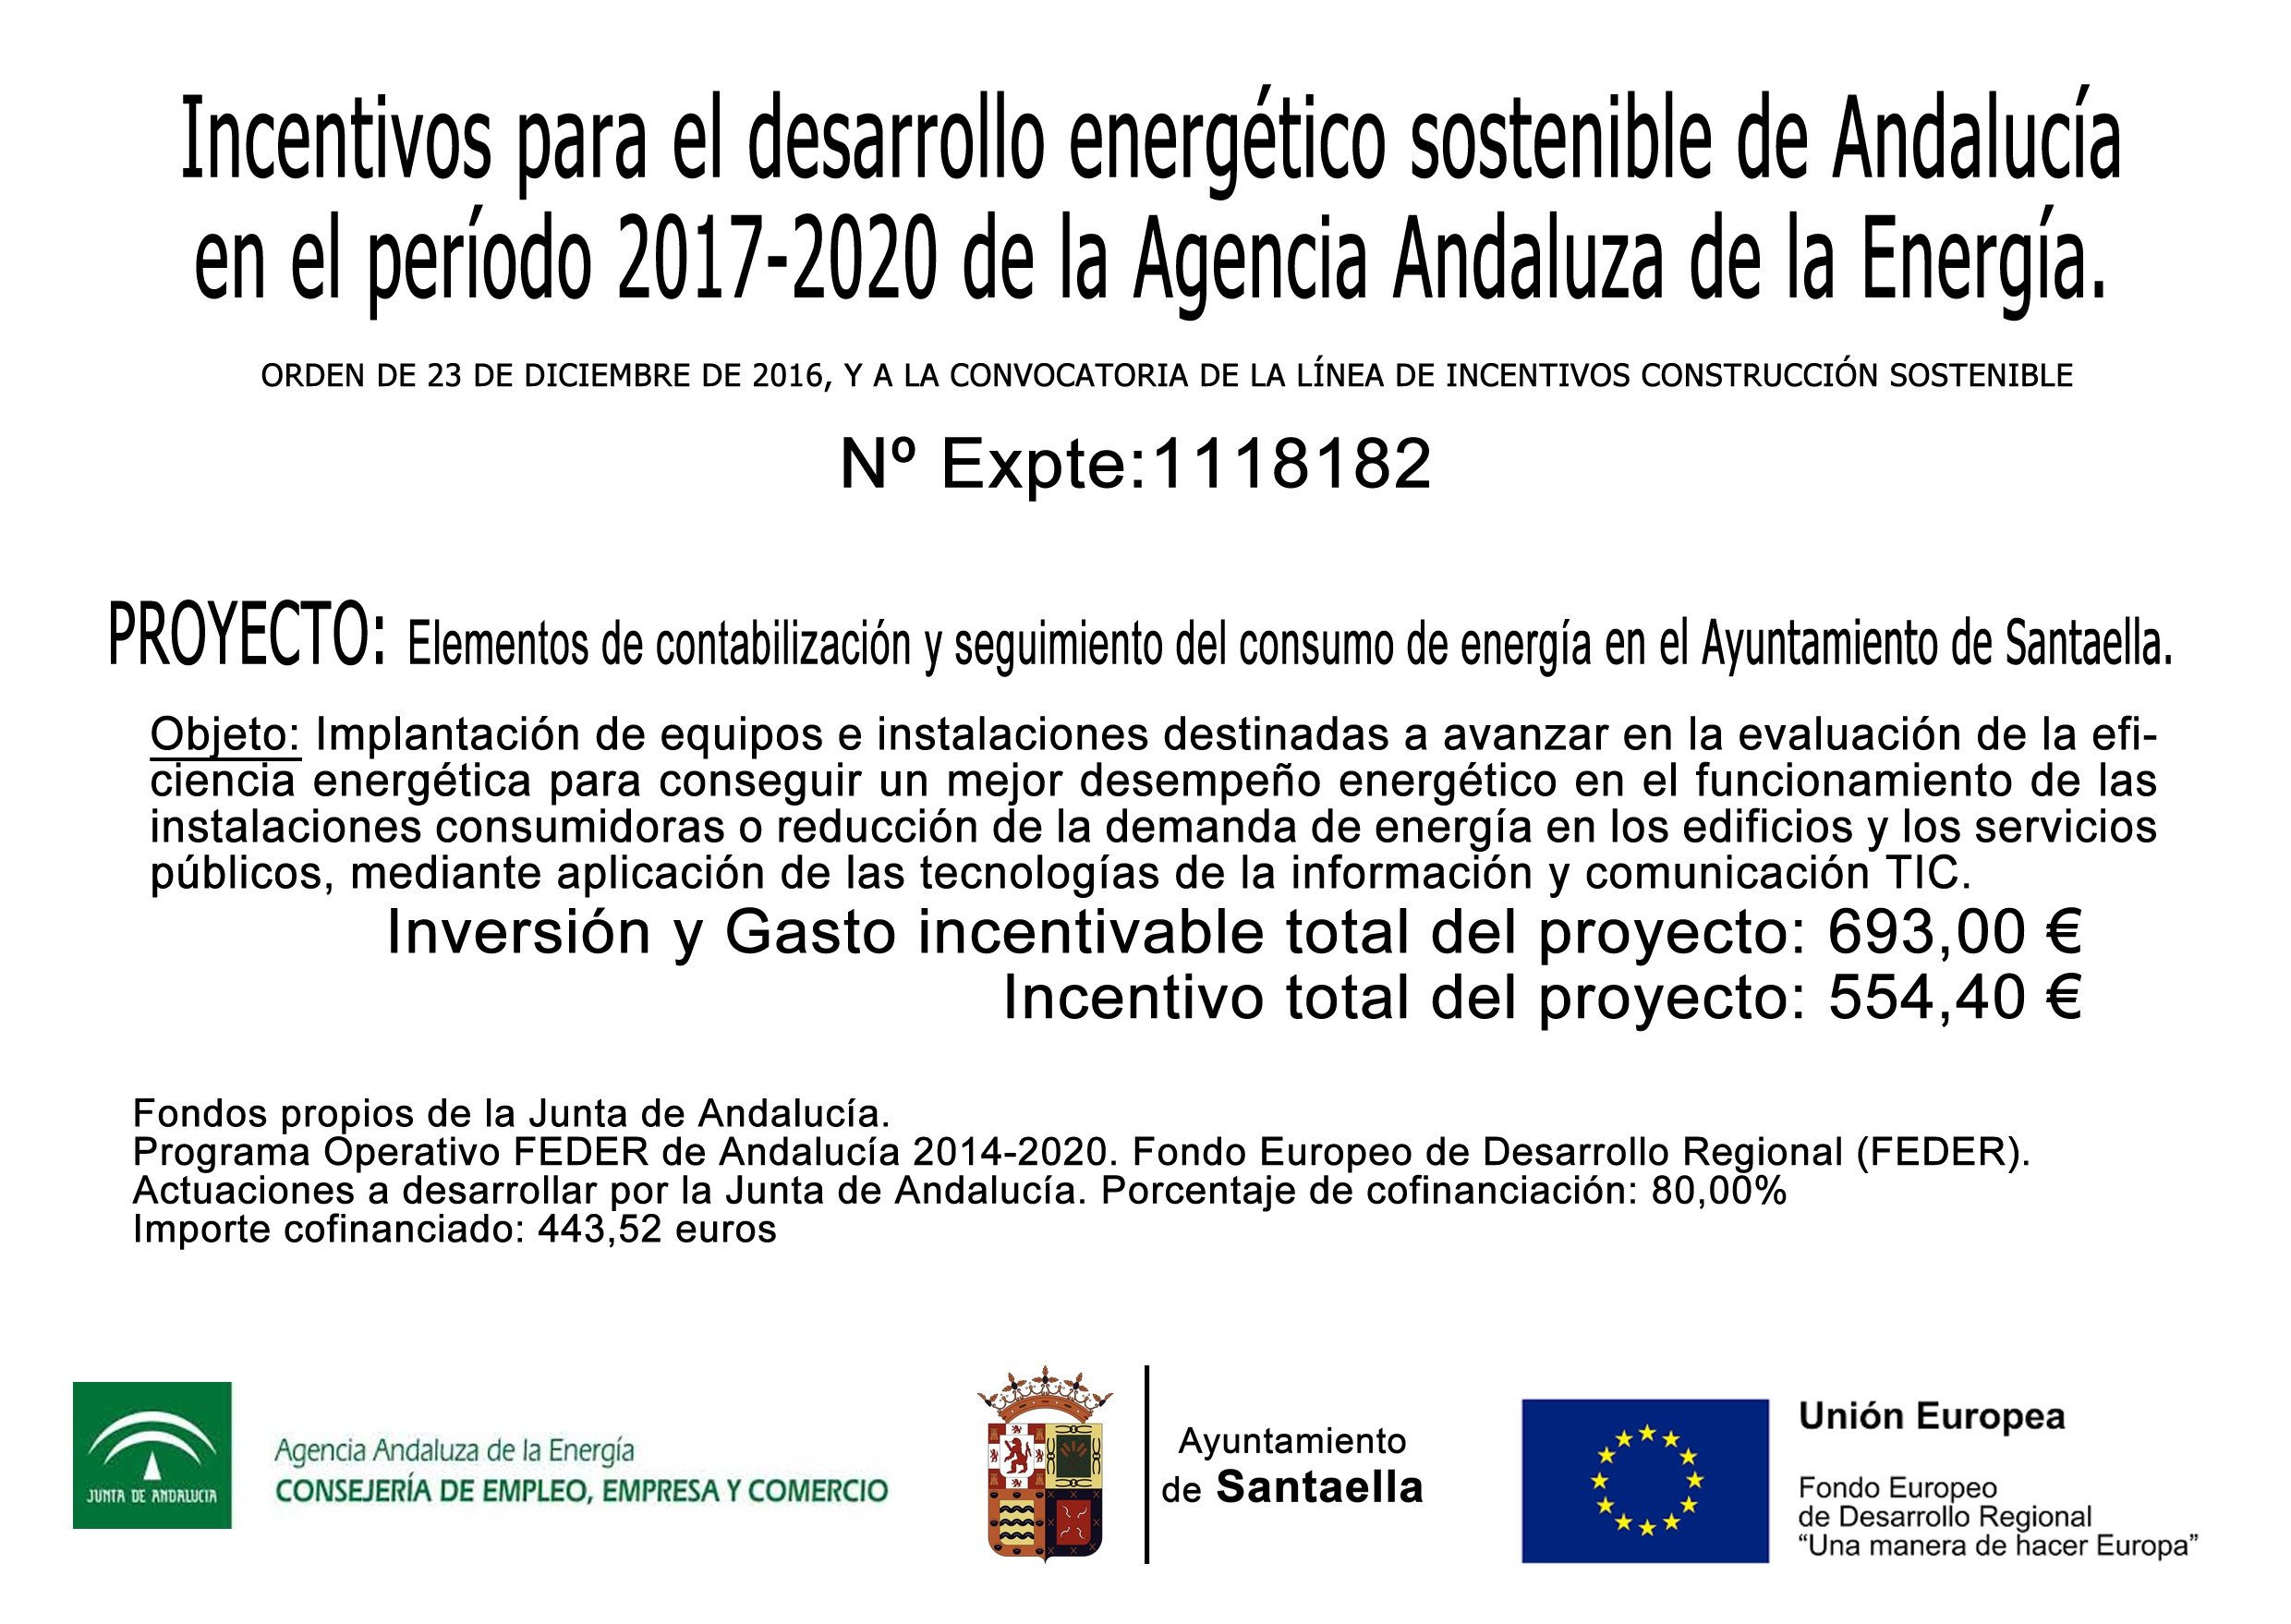 Cartel incentivos dearrollo energético sostenible expediente 1118182